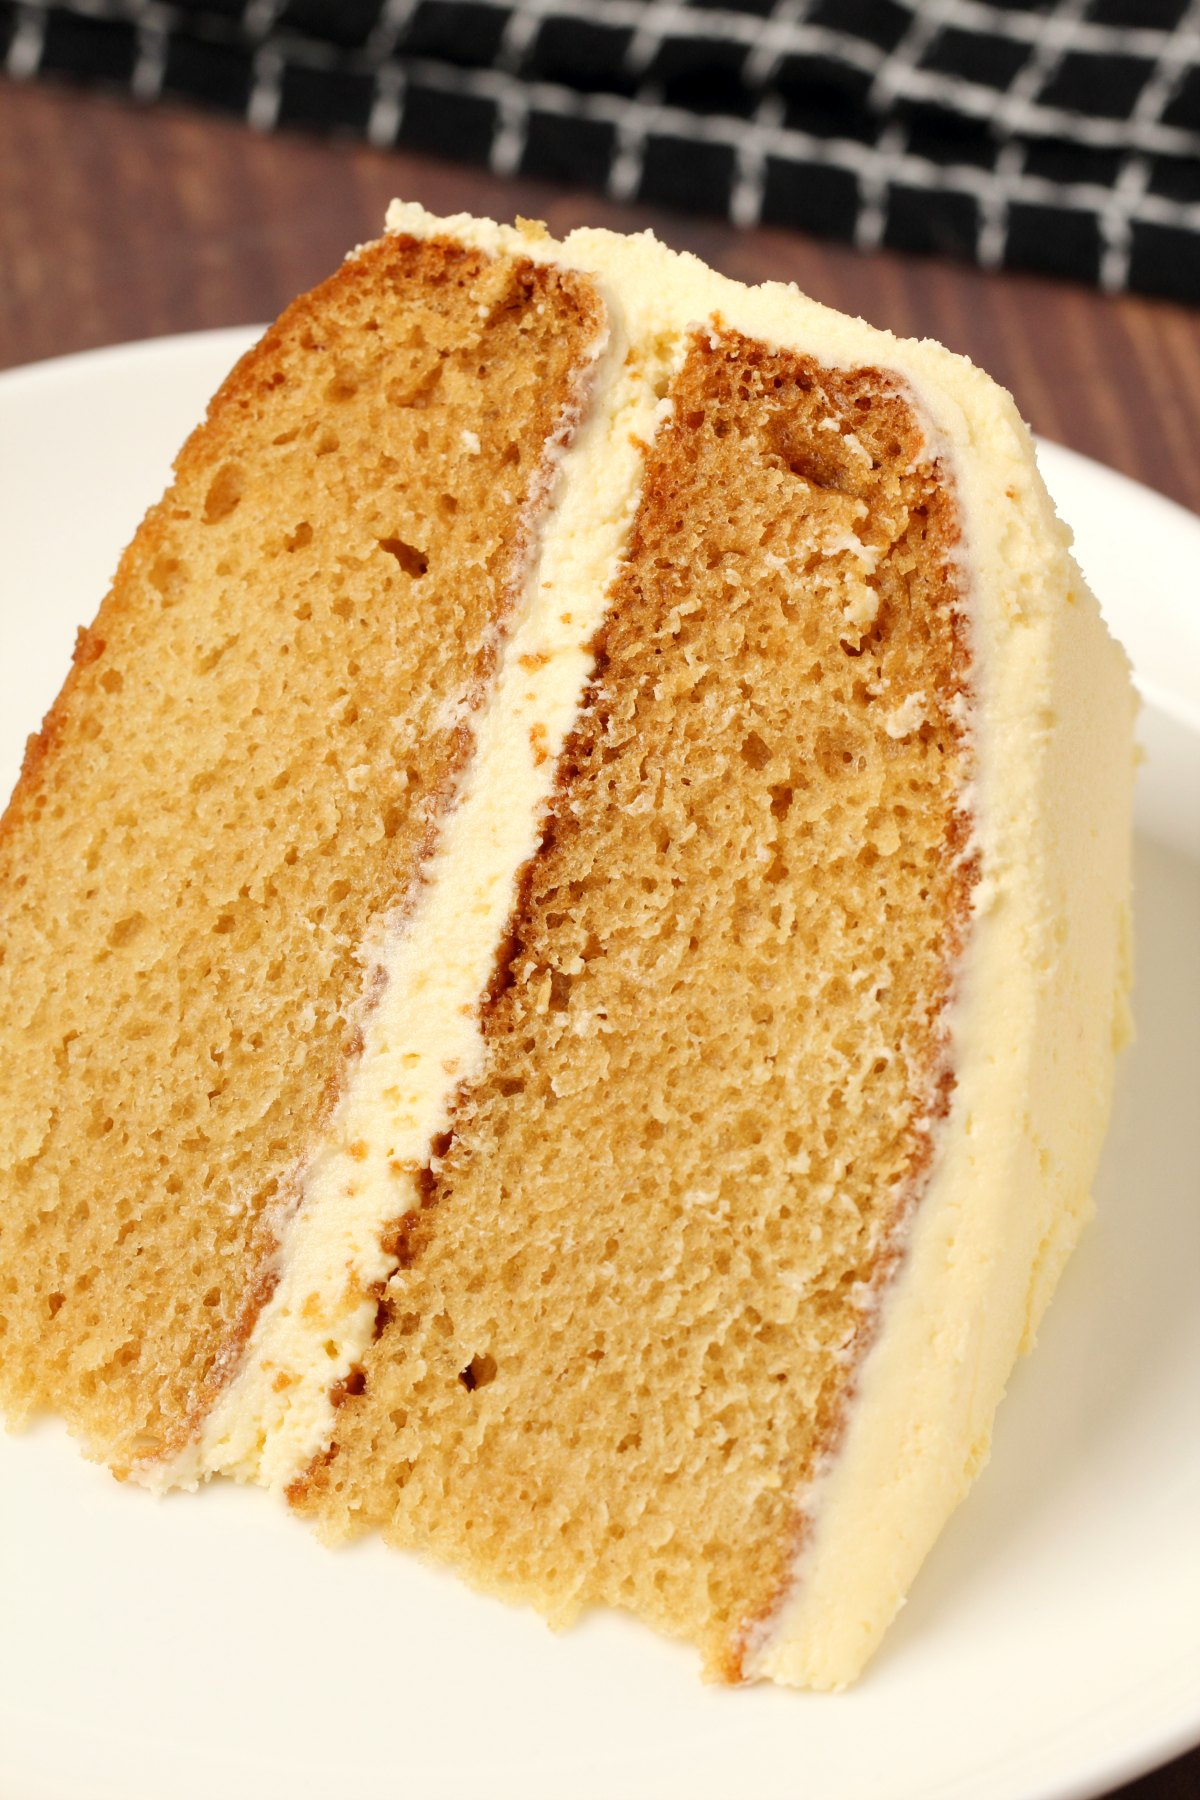 A slice of vegan vanilla cake on a white plate.